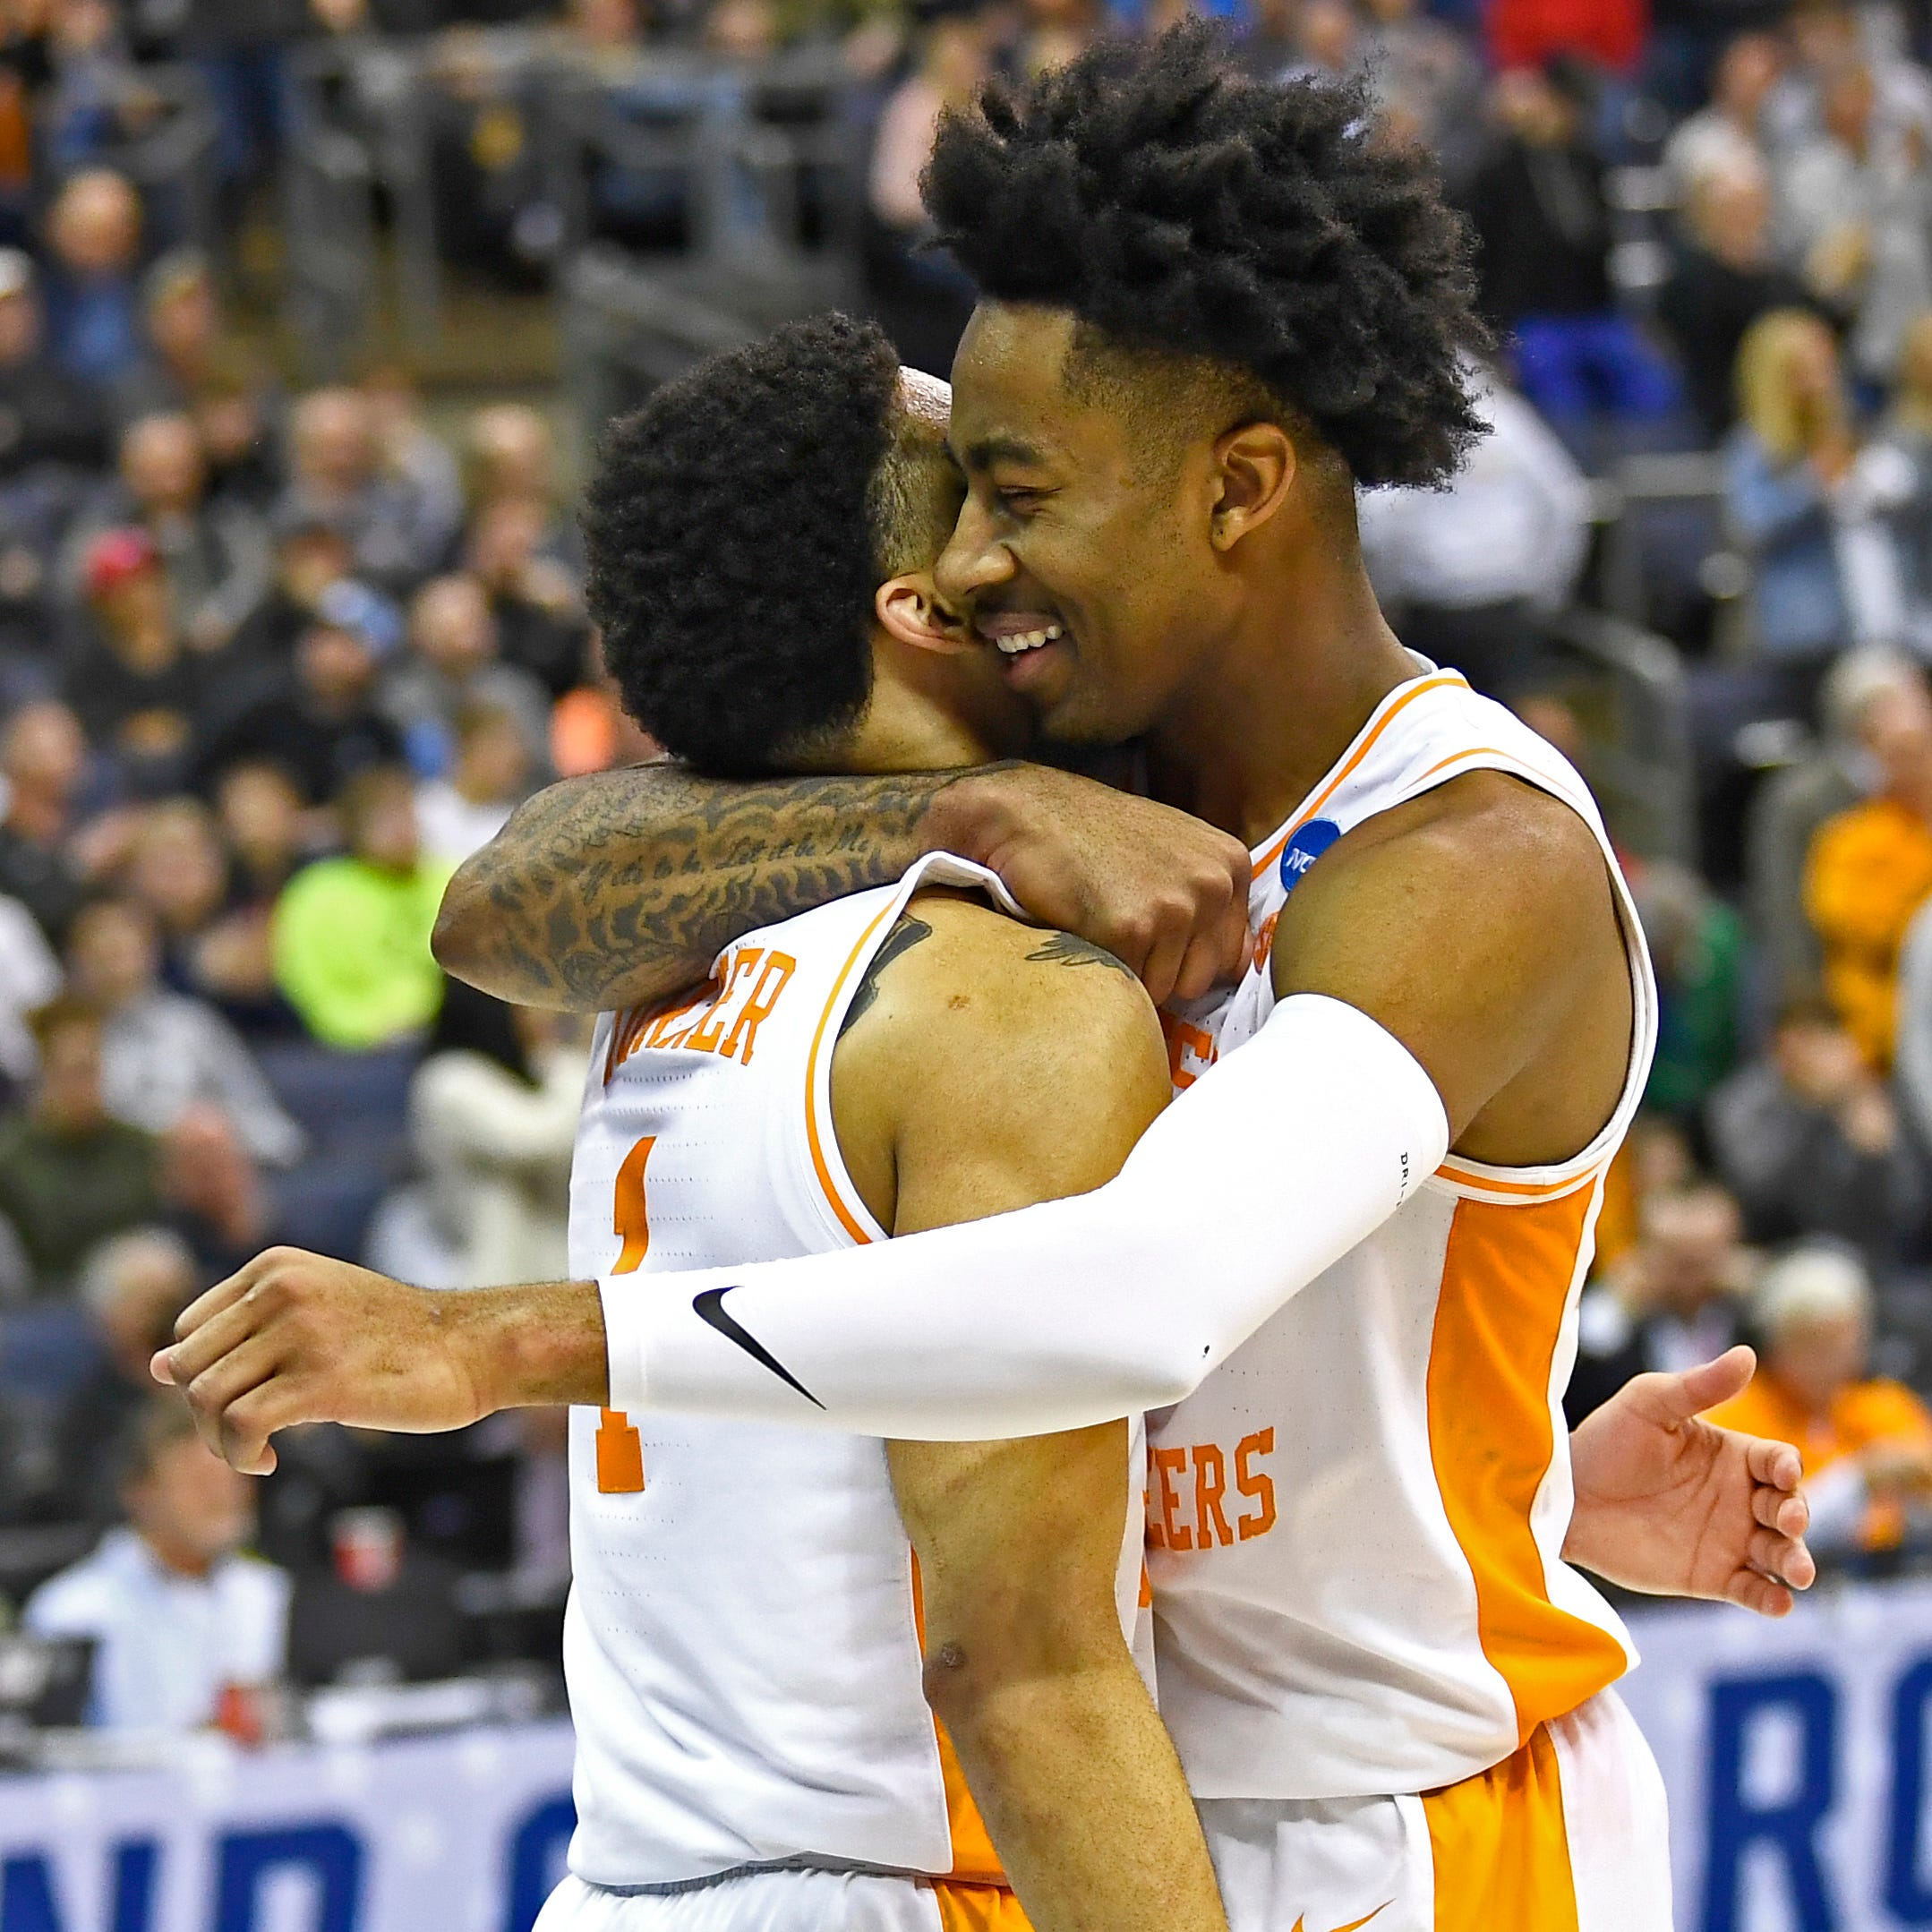 Tennessee has best chance of SEC teams to make Final Four